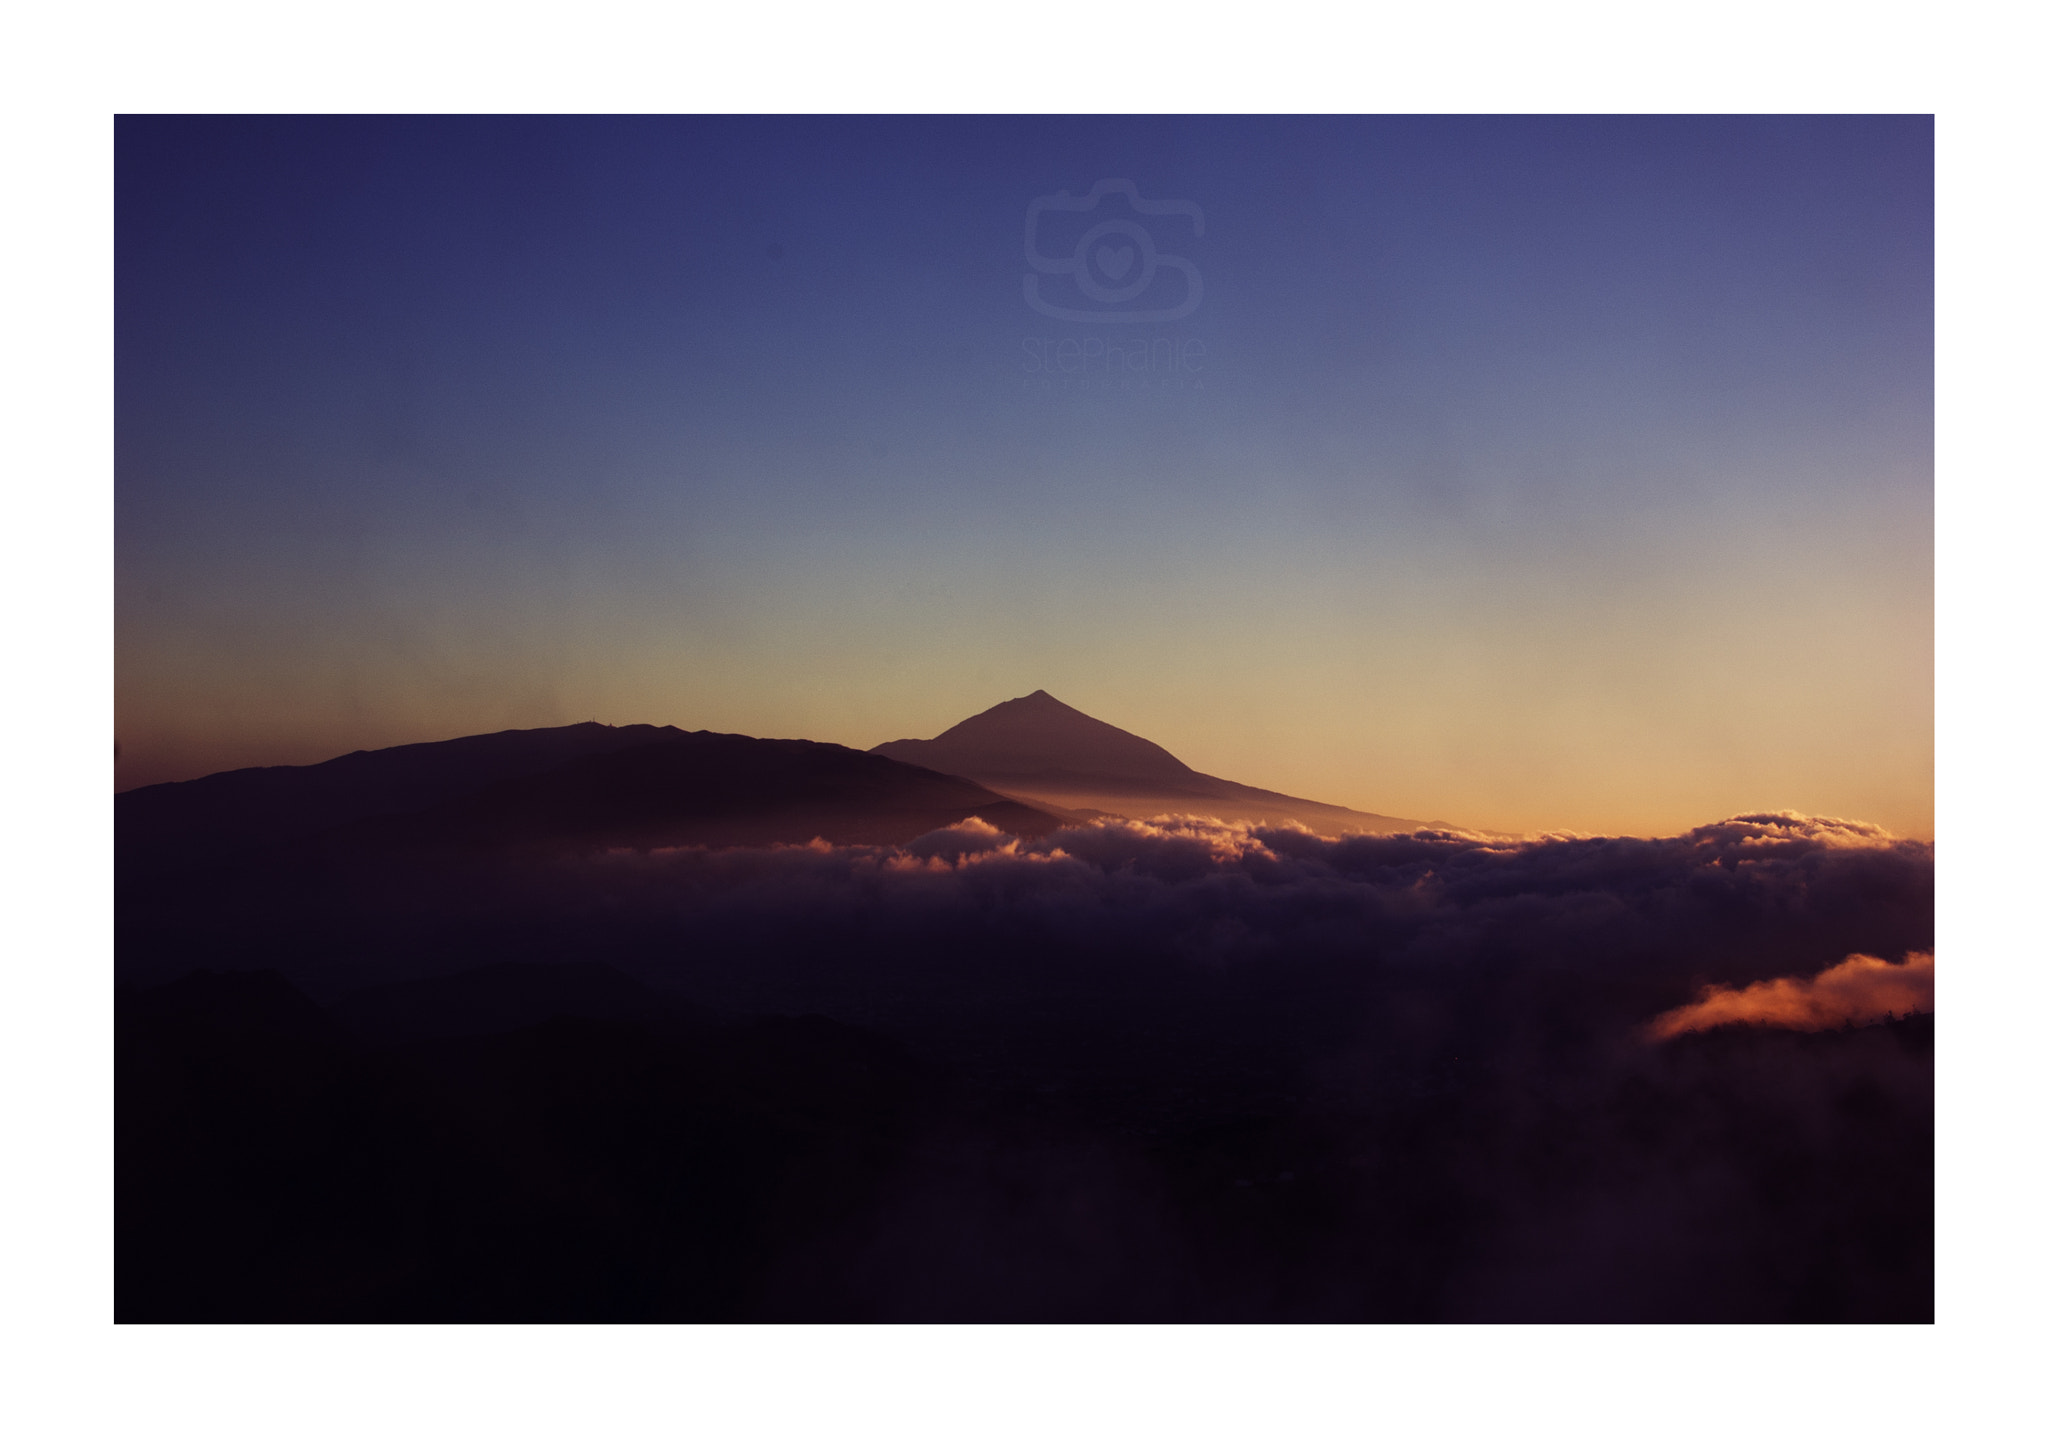 Photograph Teide by Stephanie León on 500px